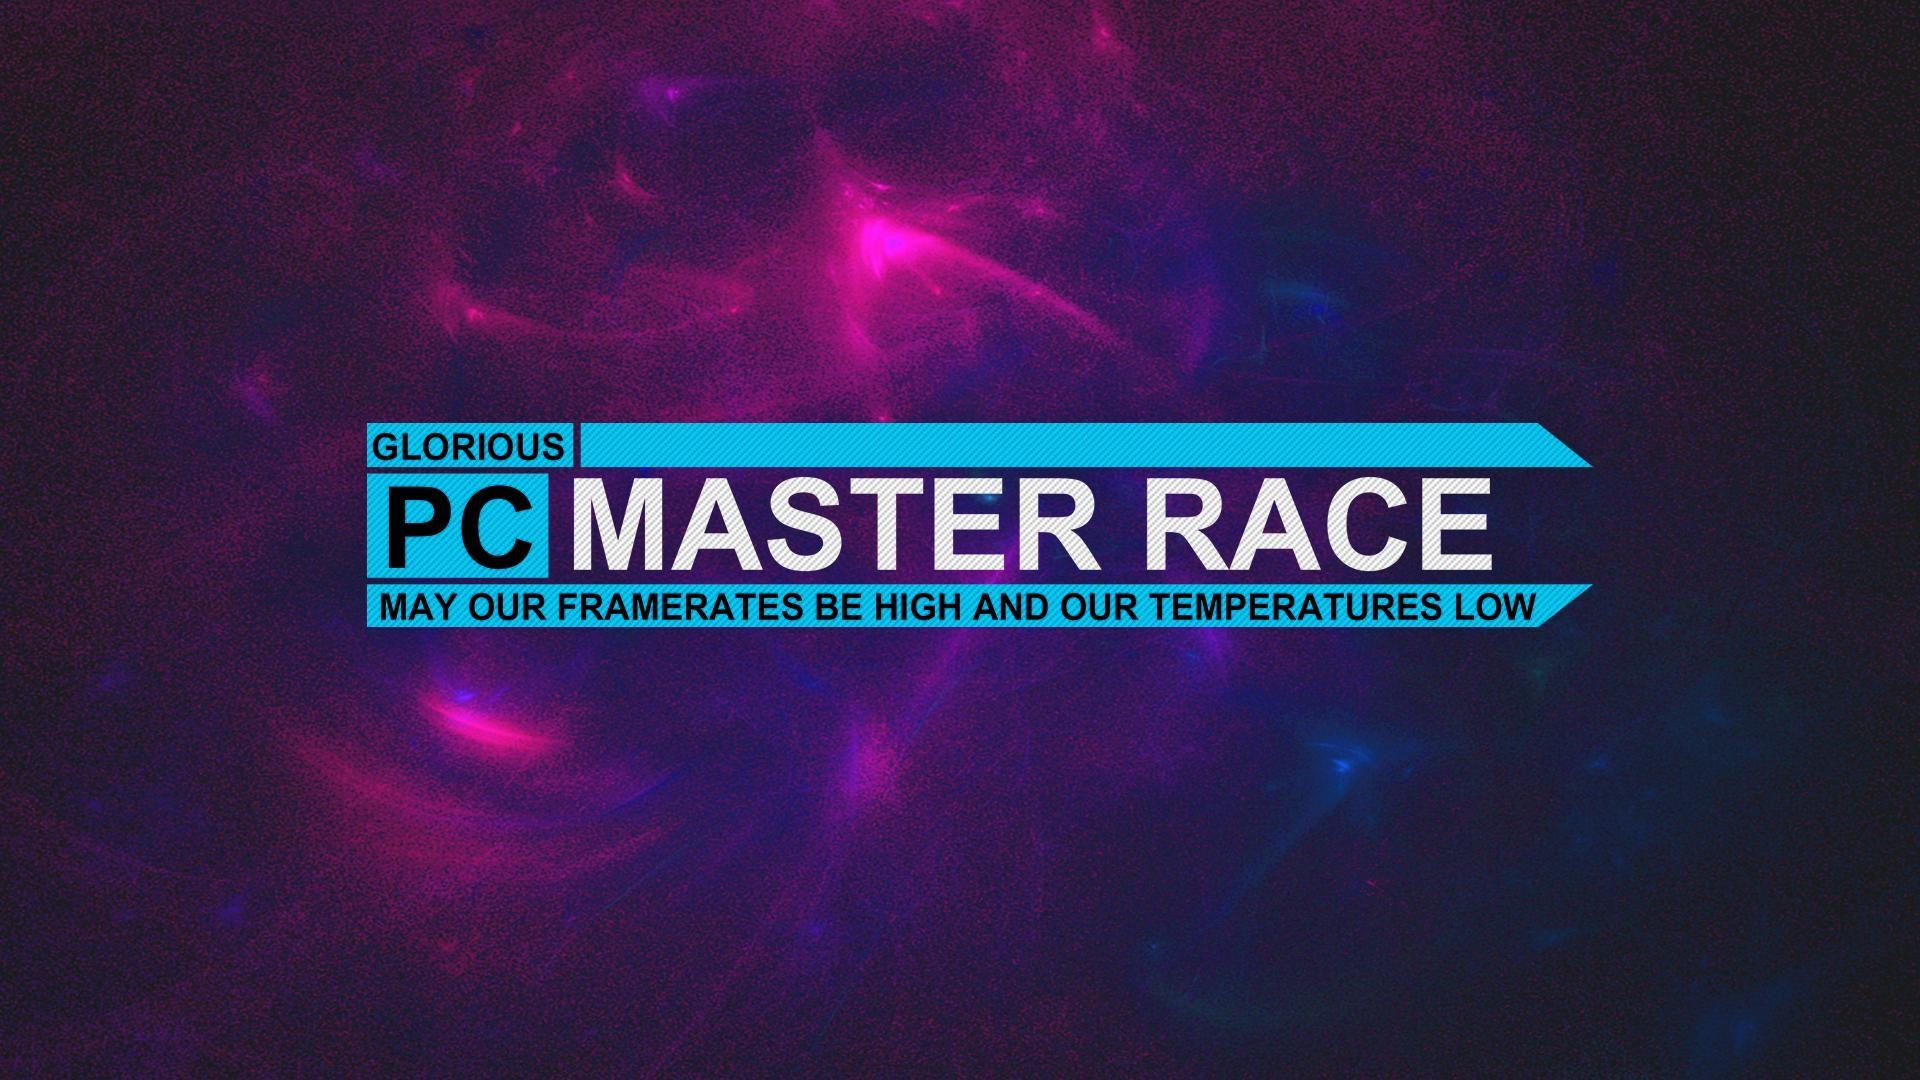 Pc Master Race 4k Wallpaper Posted By Ryan Sellers